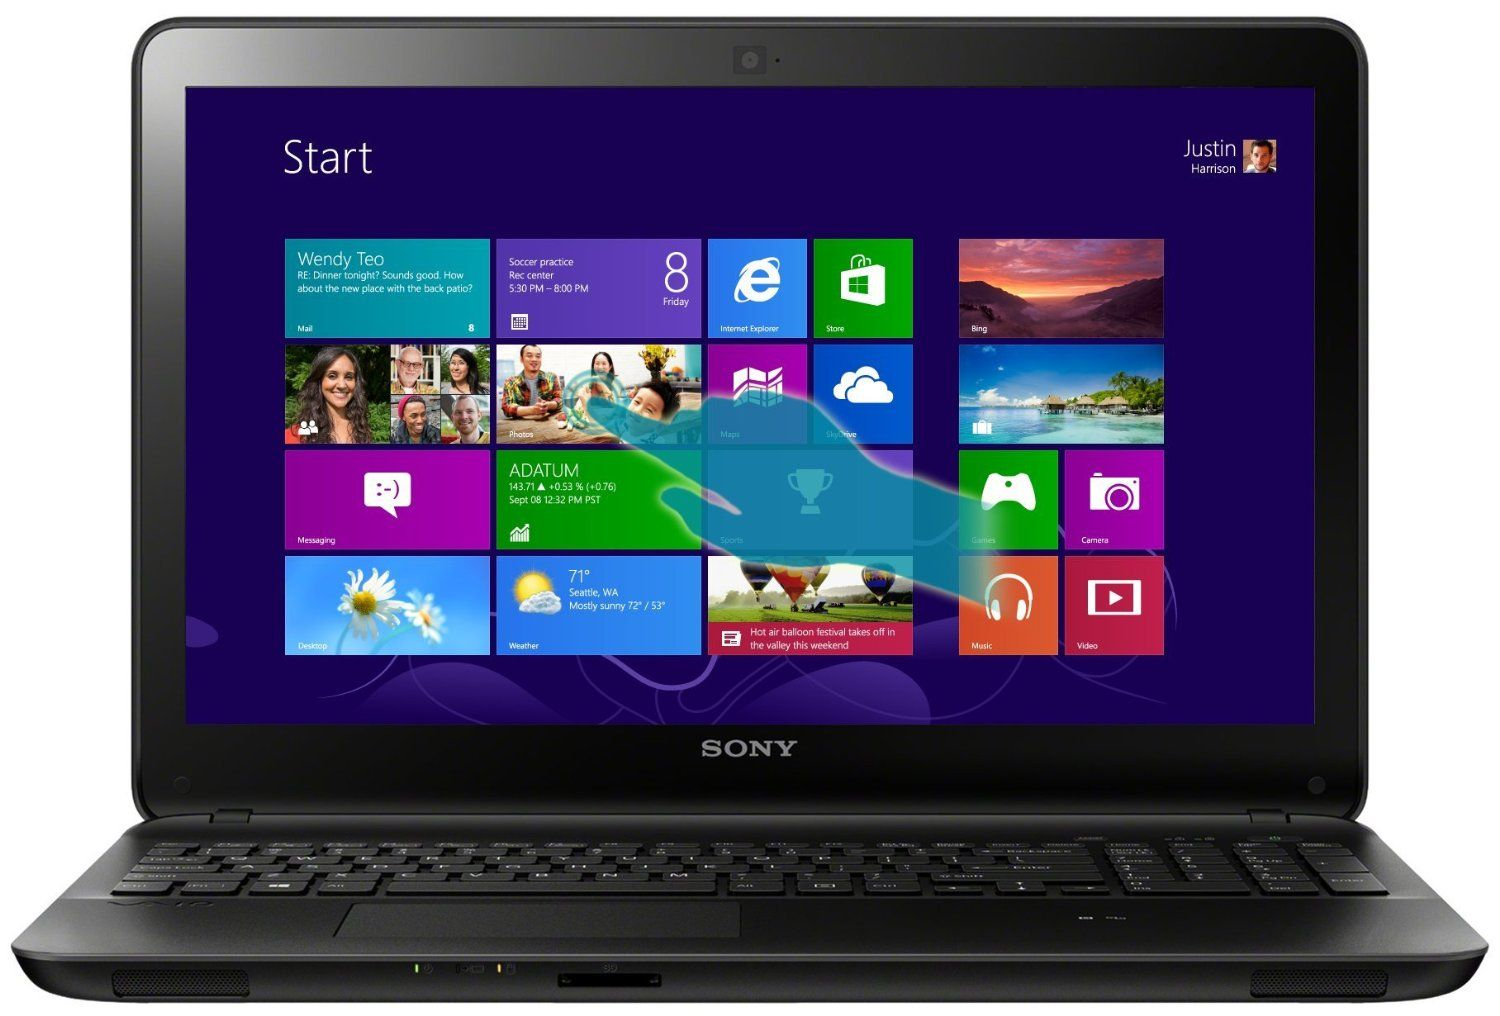 aa8aa5b54c38 Sony VAIO Fit Series SVF15215CXB 15.5-Inch Core i5 Touch Laptop ...